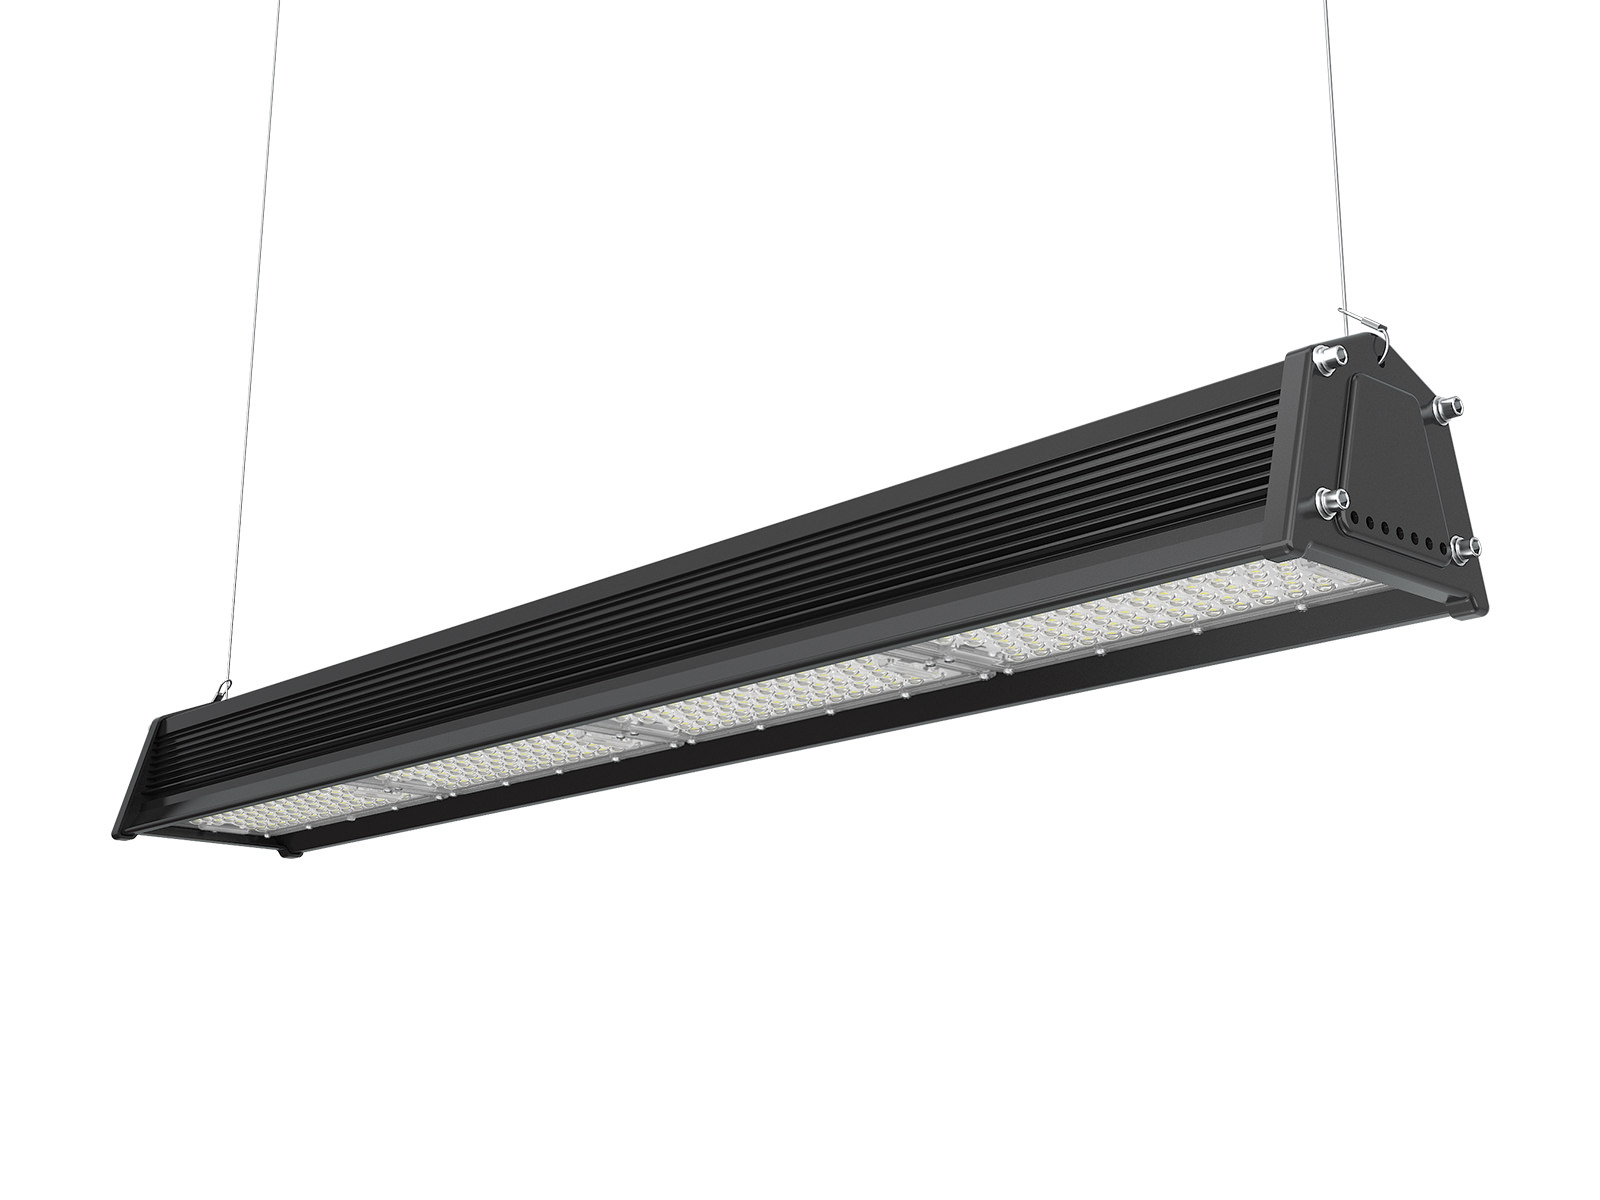 HiRack LED Linear High Bay Light